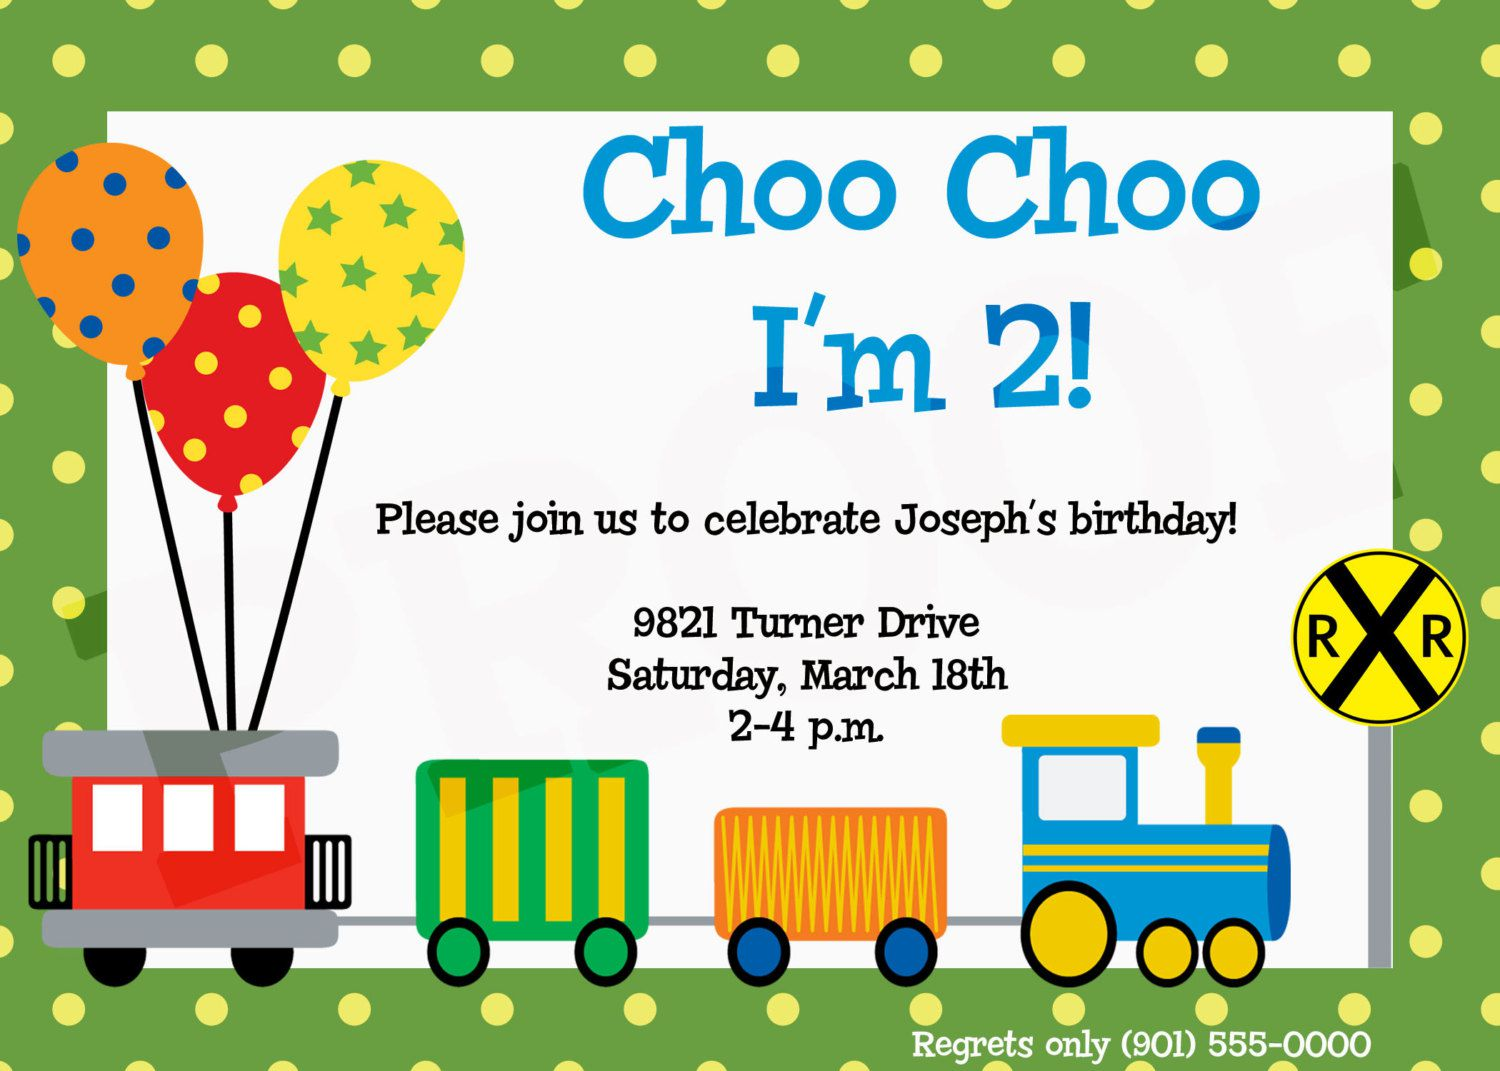 Train Birthday Invitations For Kid Free Printable Templates - Party invitation template: train party invitations templates